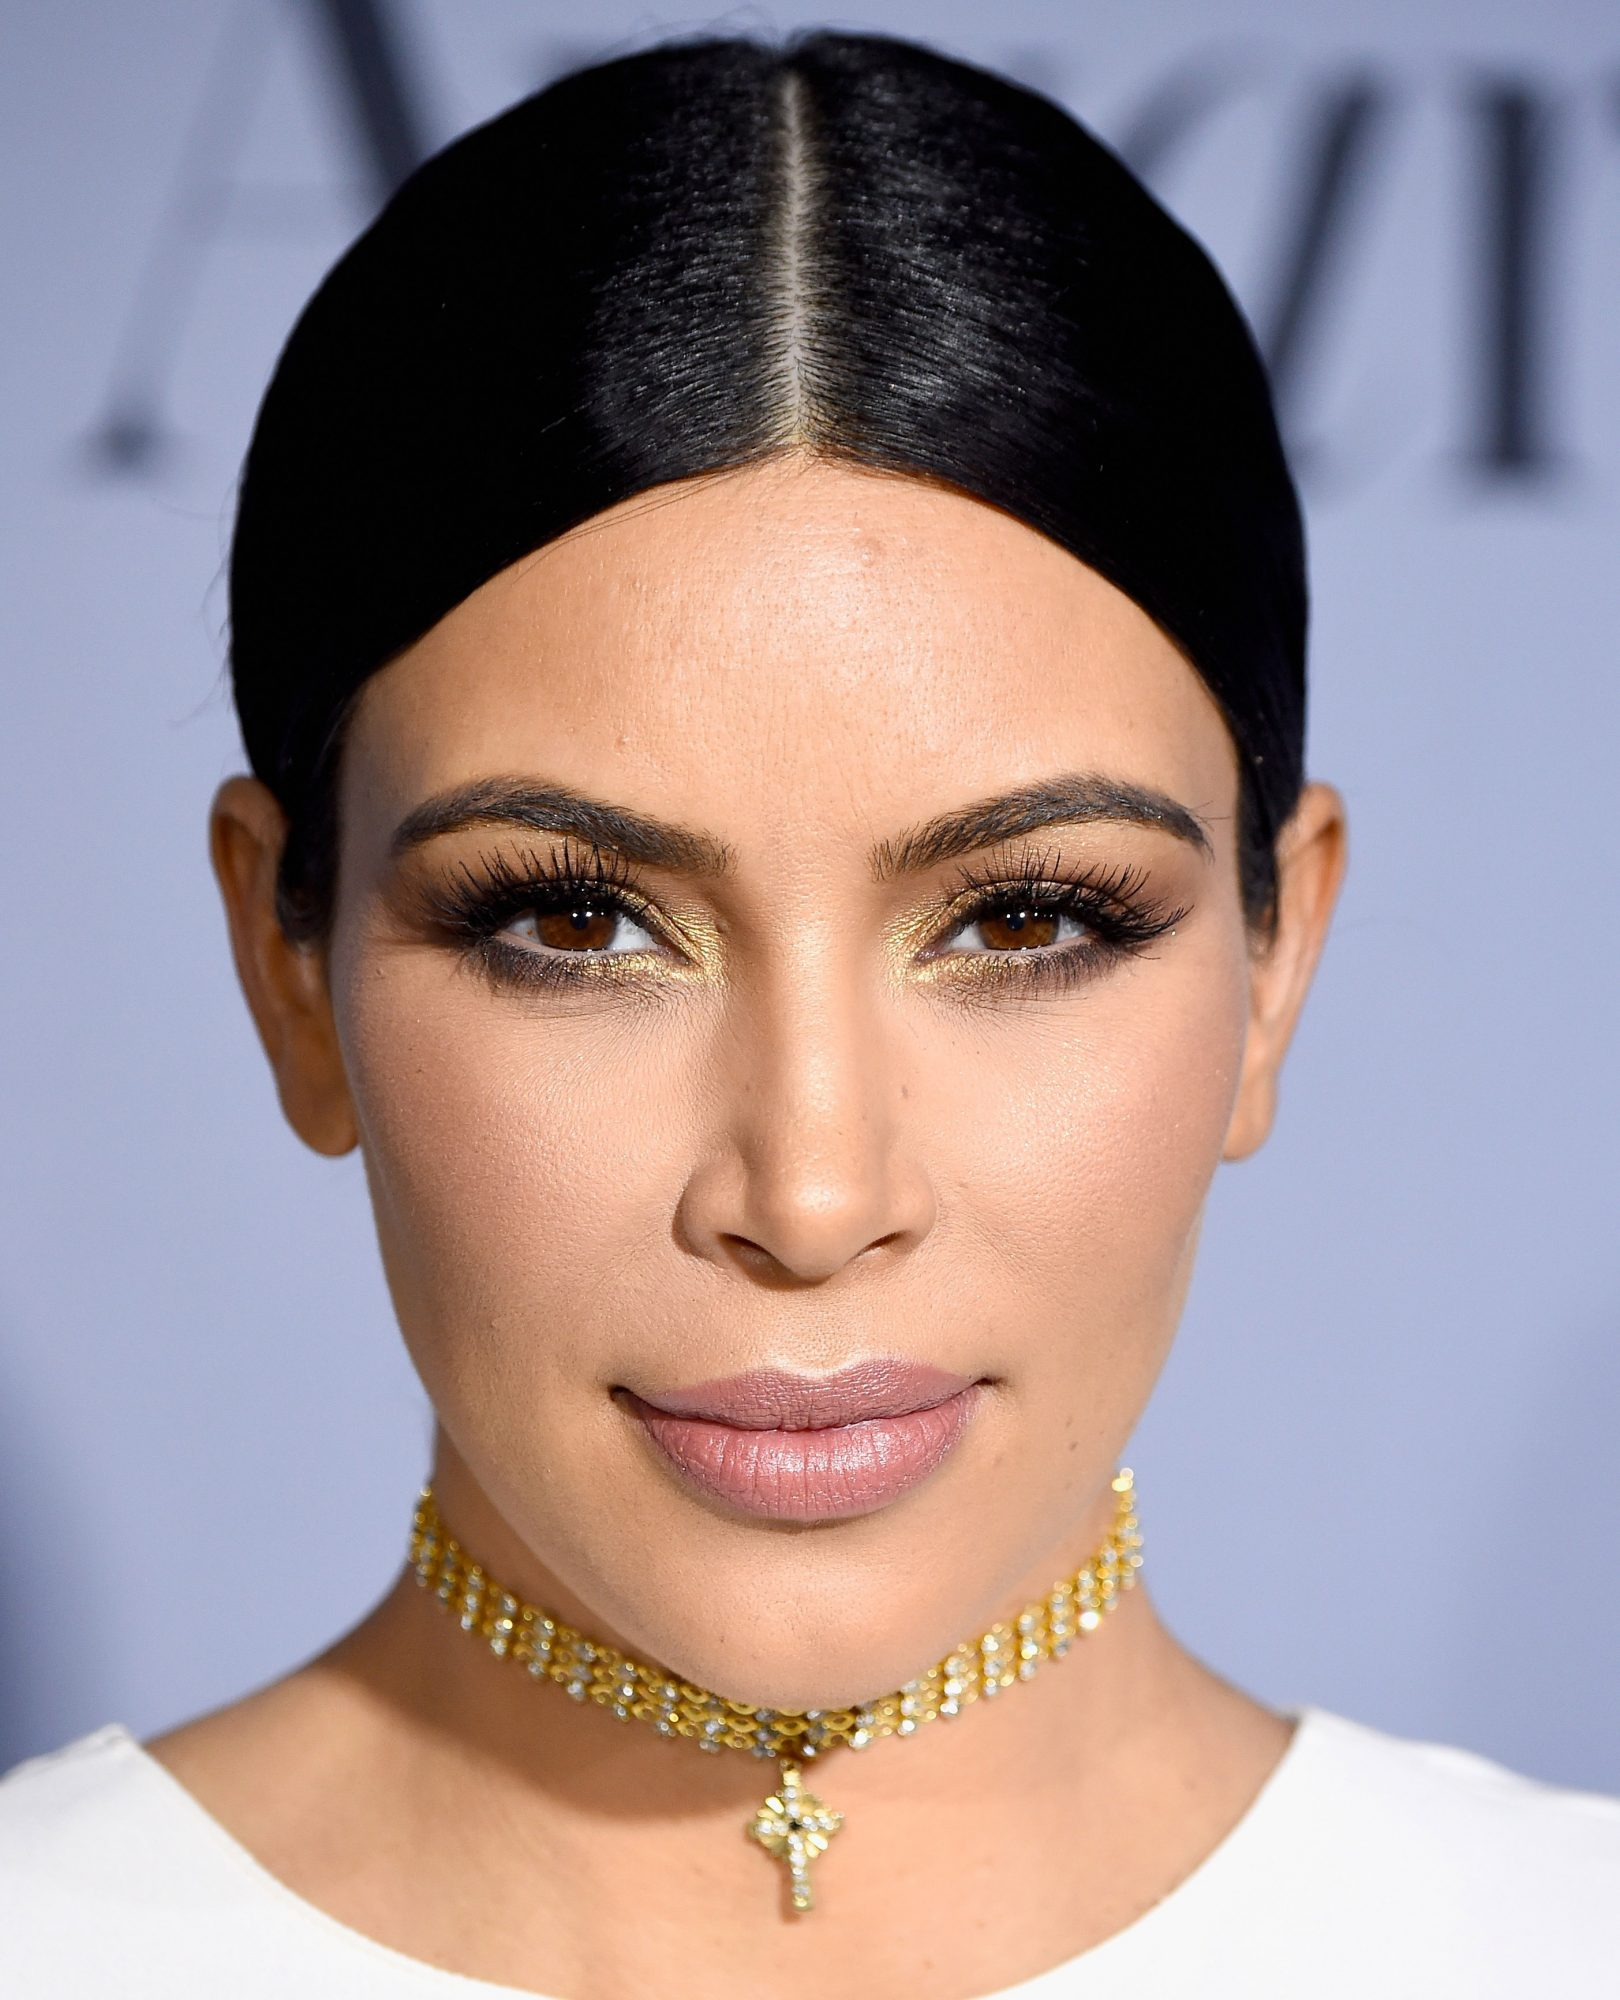 Kim Kardashian's Warm Metallic Eye